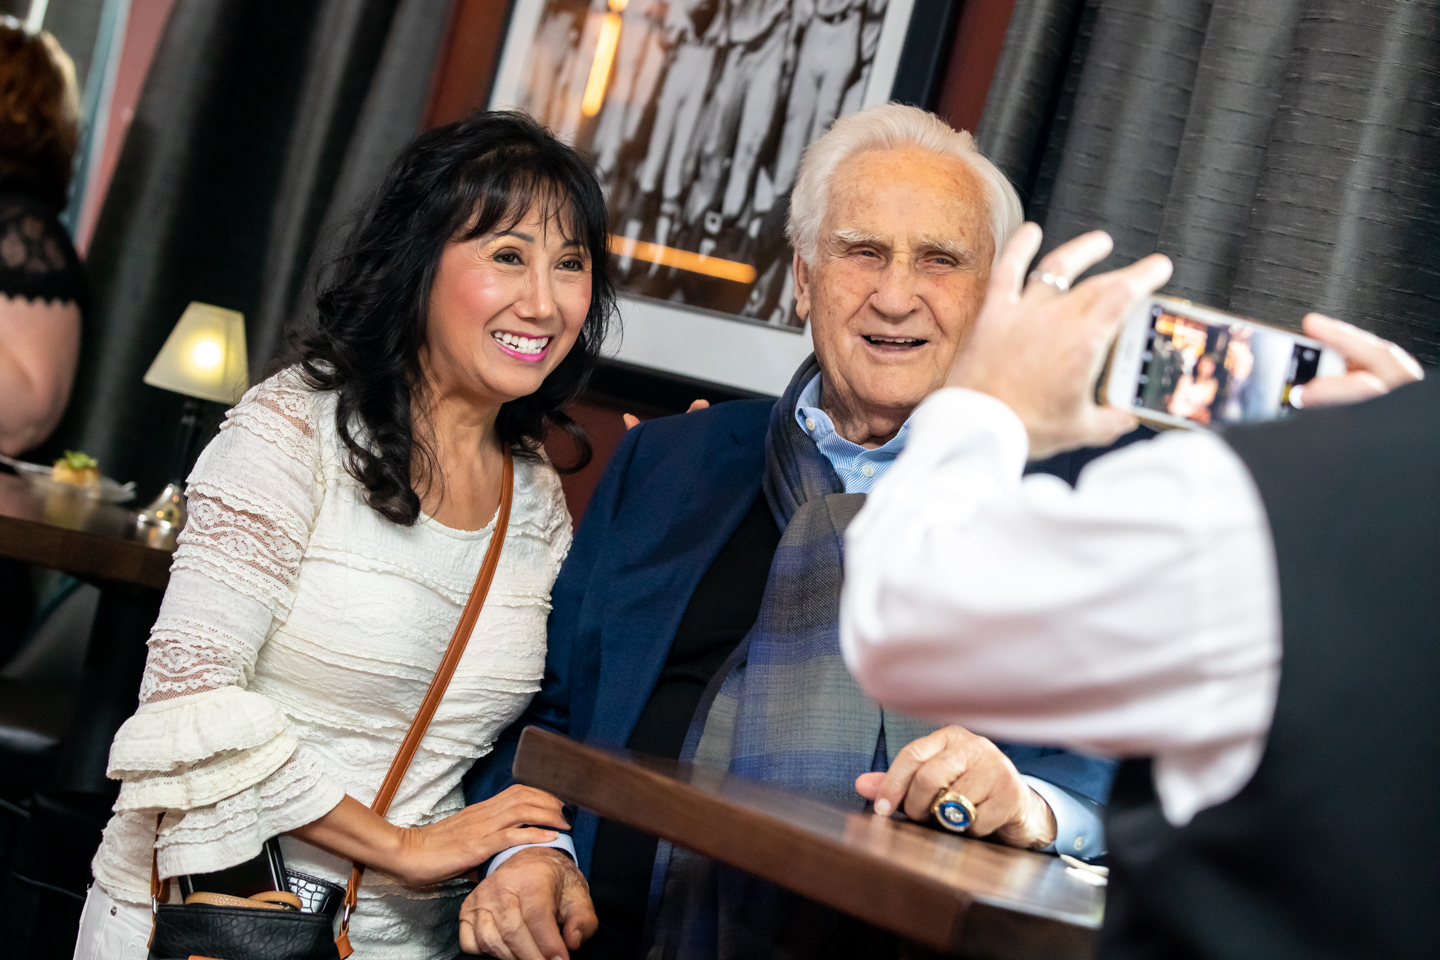 don-shula-shulas-disney-dolphin-swan-vip-picture-fans-orlando-event-photographer-professional-300dpi-yellows-5.jpg